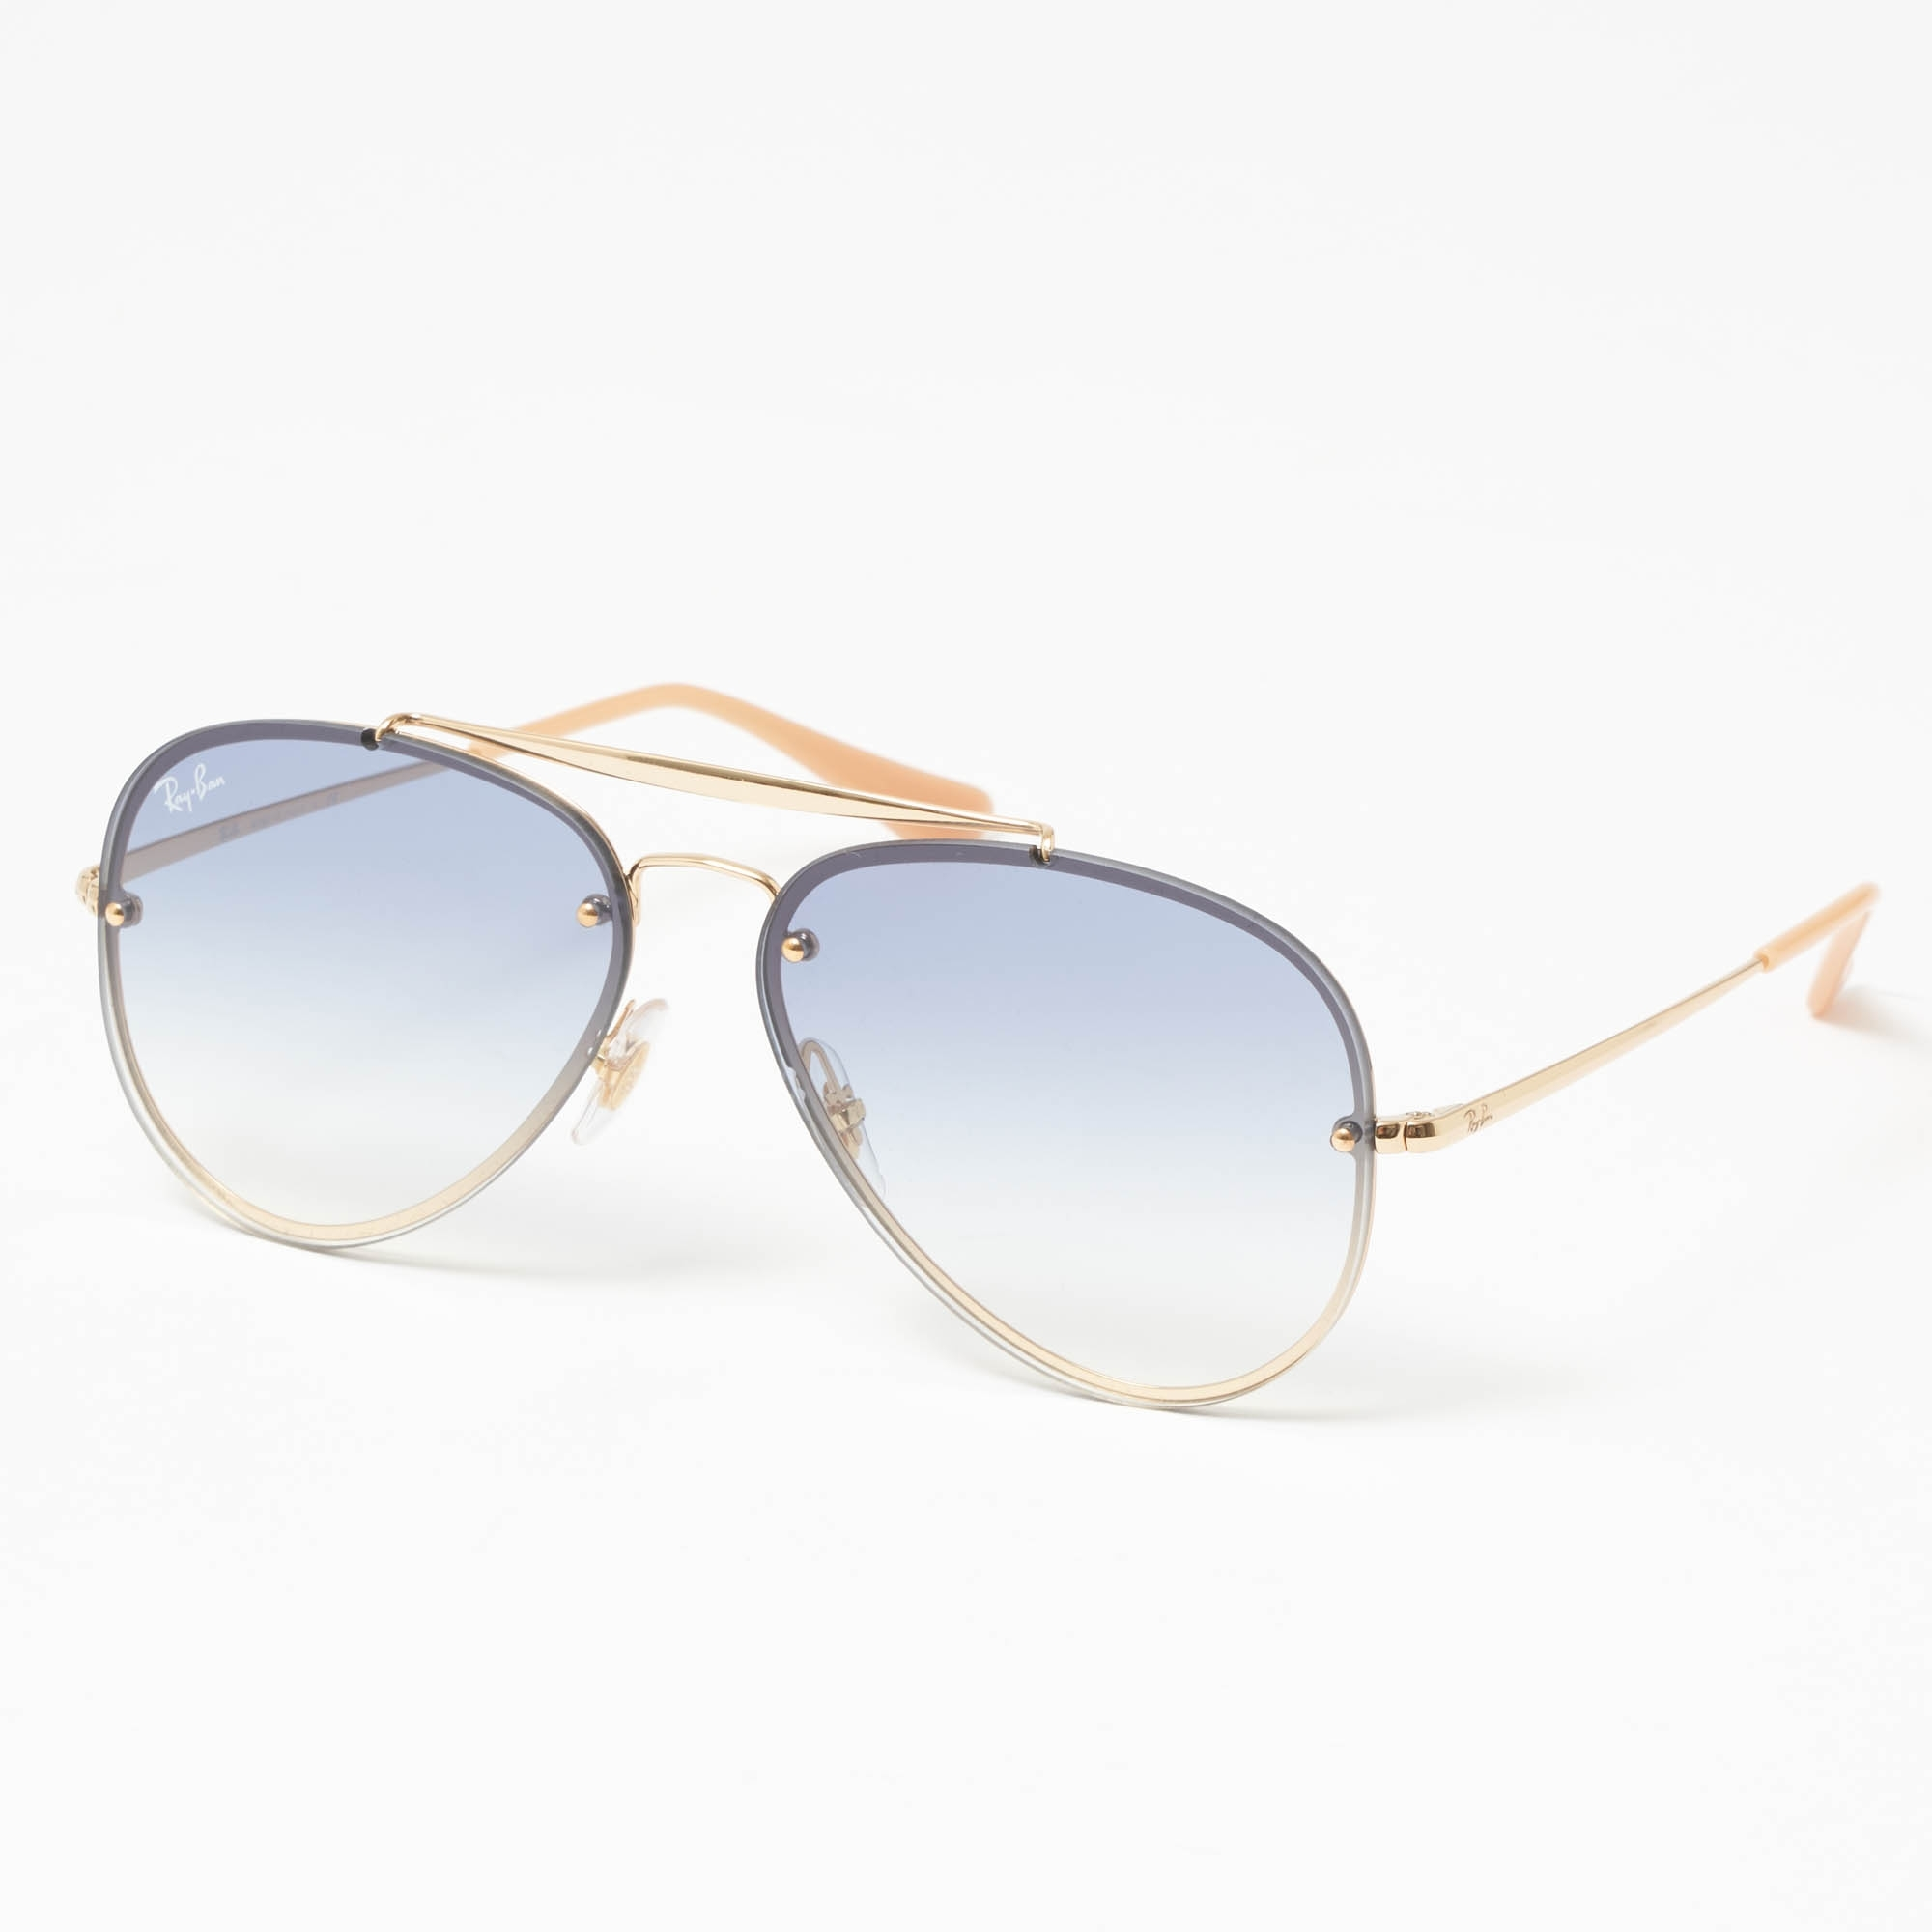 22a8e6116 Gold Blaze Aviator Sunglasses - Light Blue Gradient Lenses